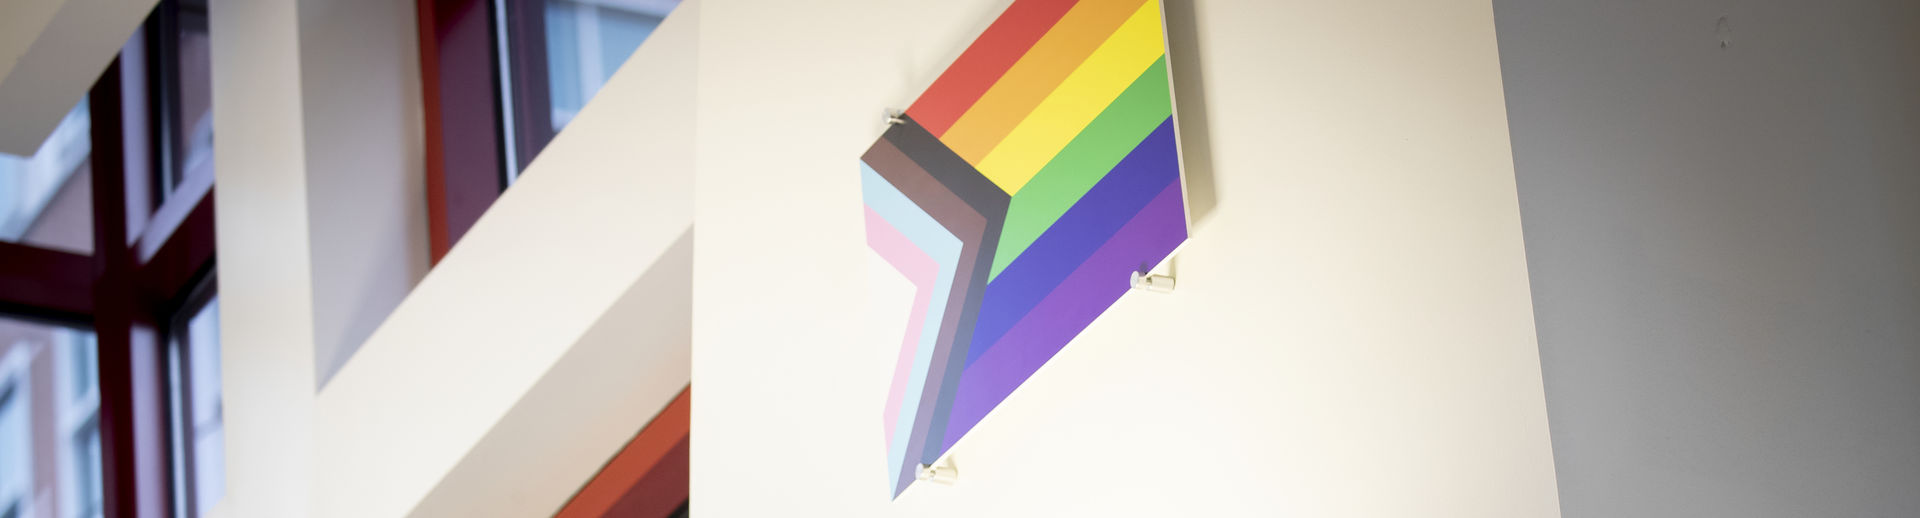 The pride flag hangs in the student center of Temple University.